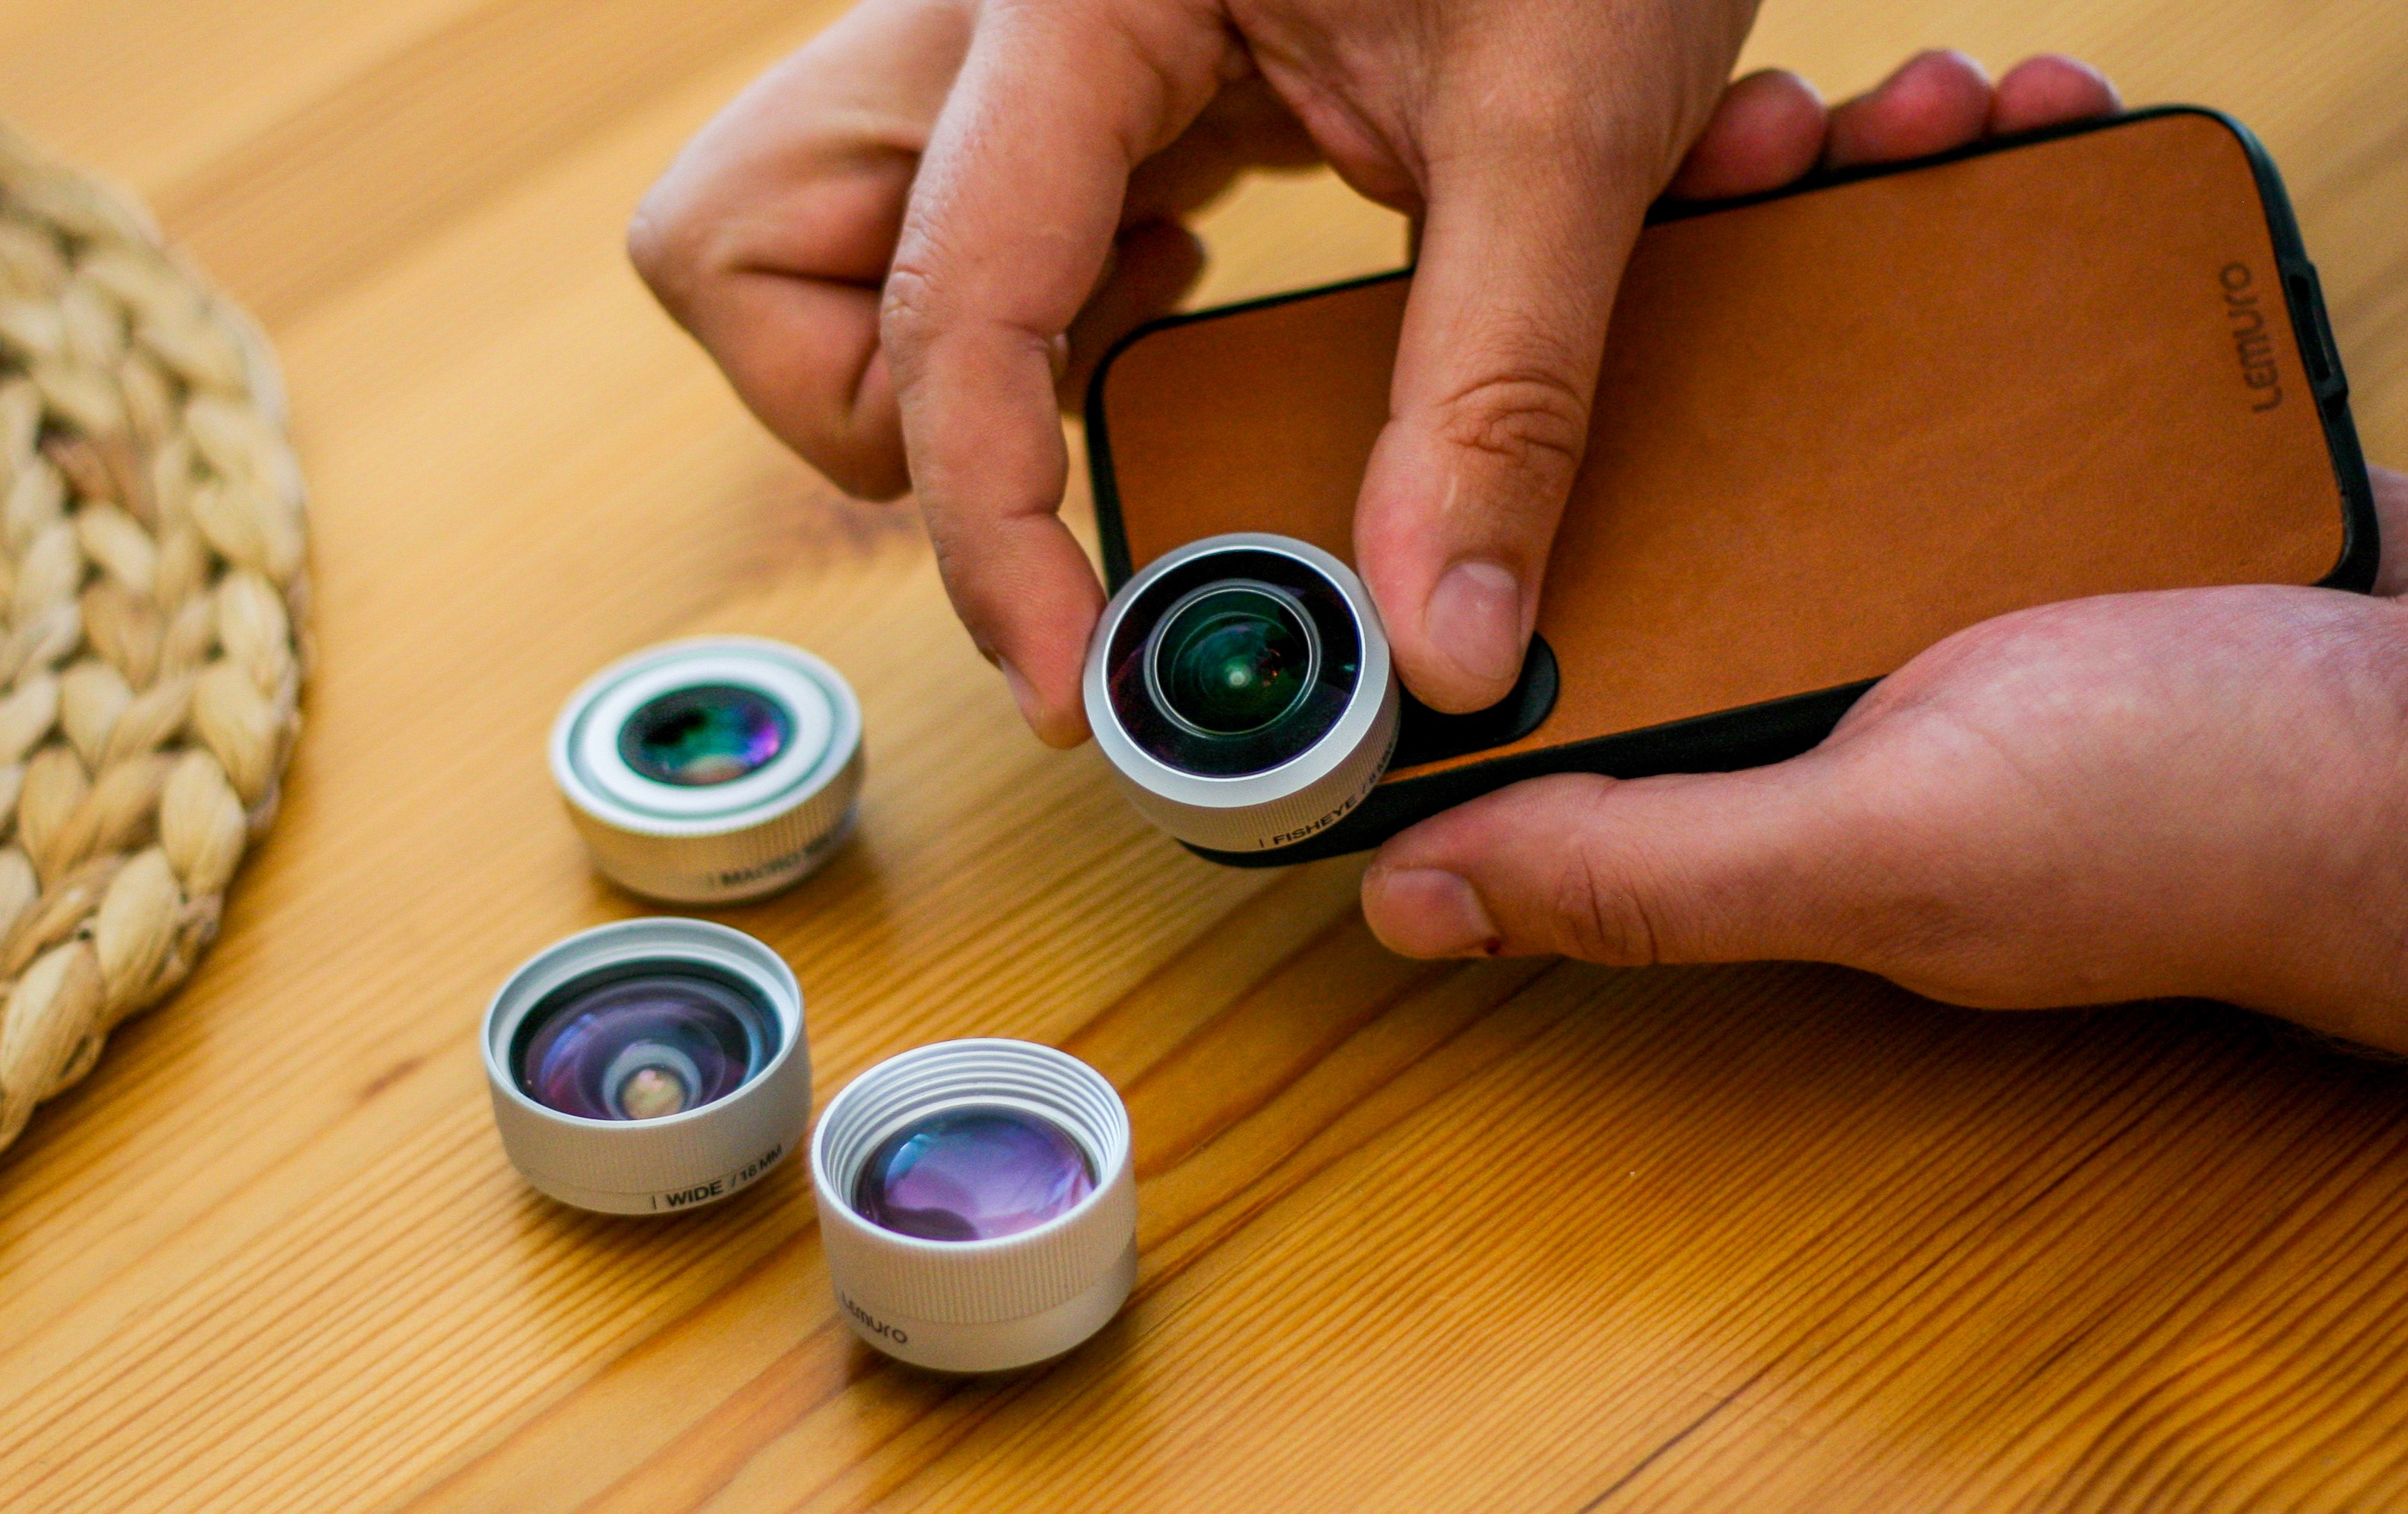 big sale 29d19 9a2f5 Lemuro launches line of high-end iPhone accessory lenses: Digital ...